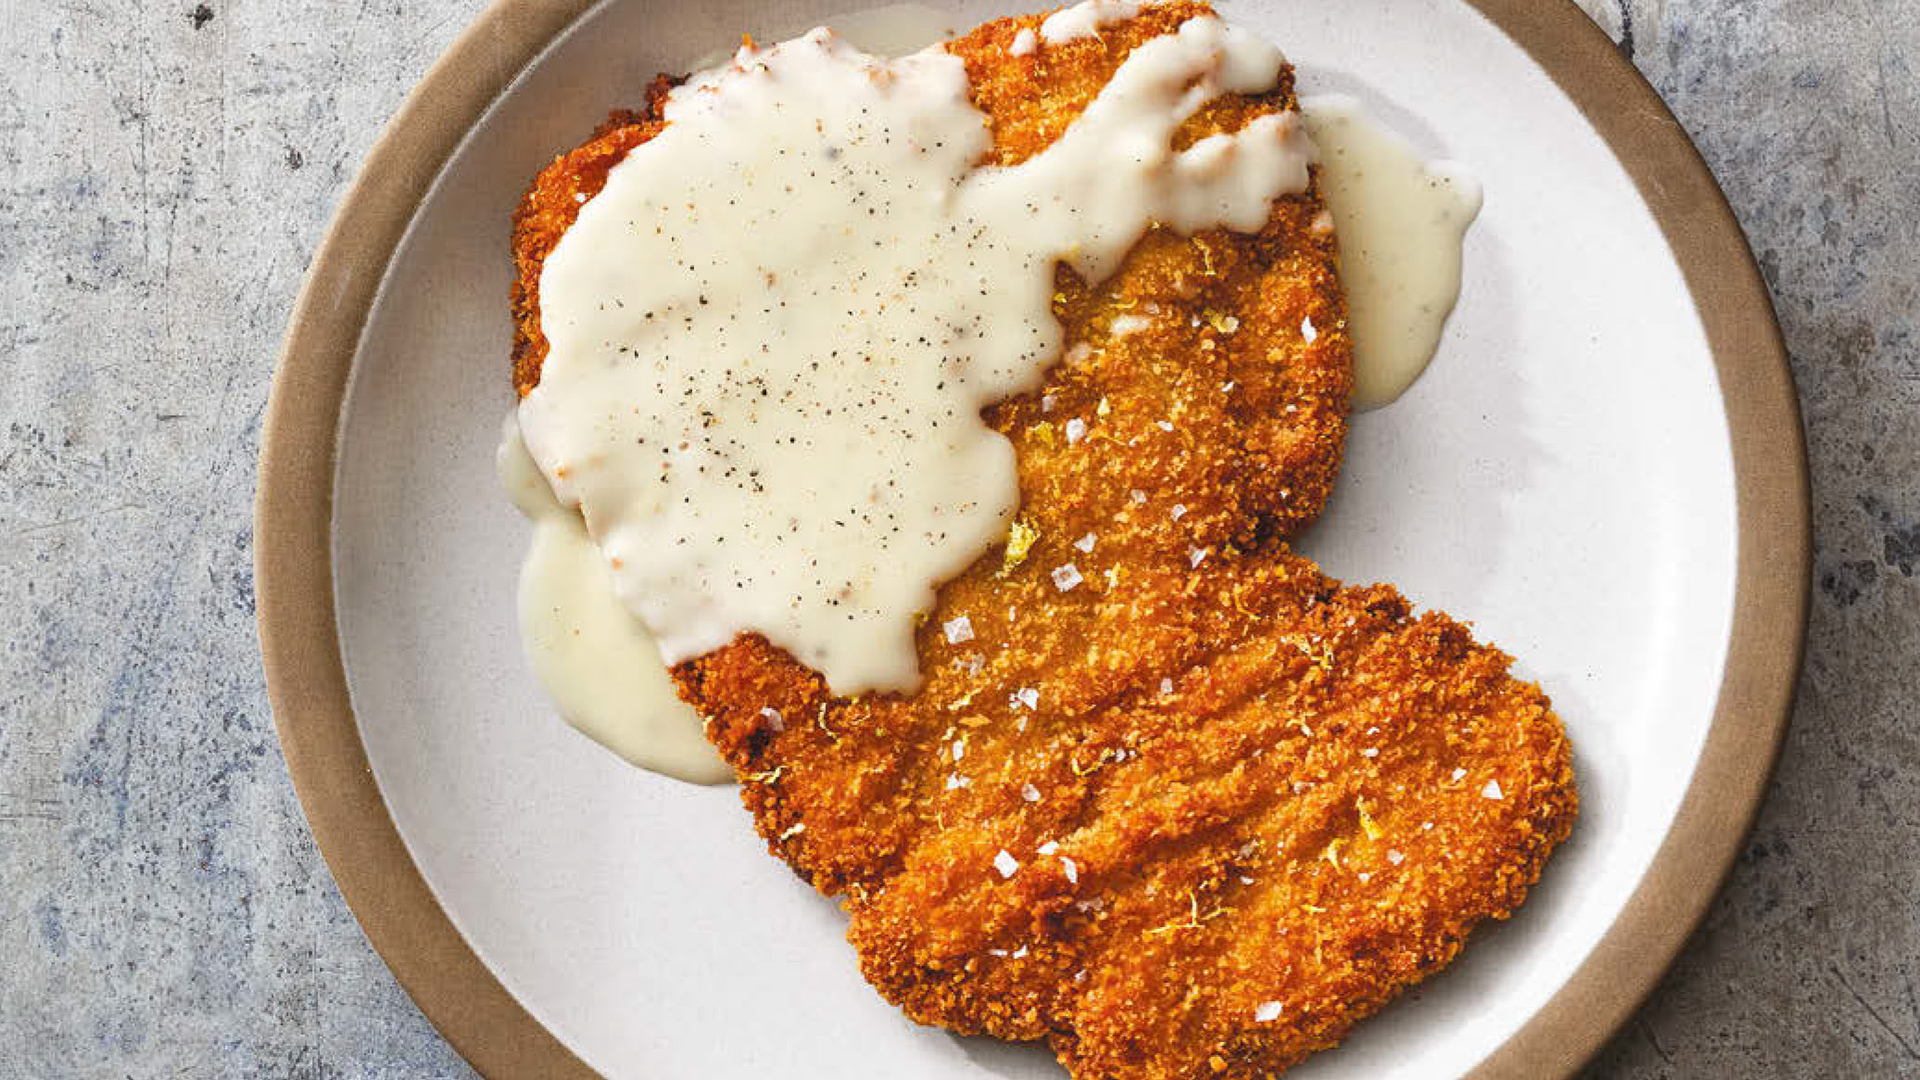 Chicken Fried Steak With Bread Crumbs Milk Lemon Zest And Butter